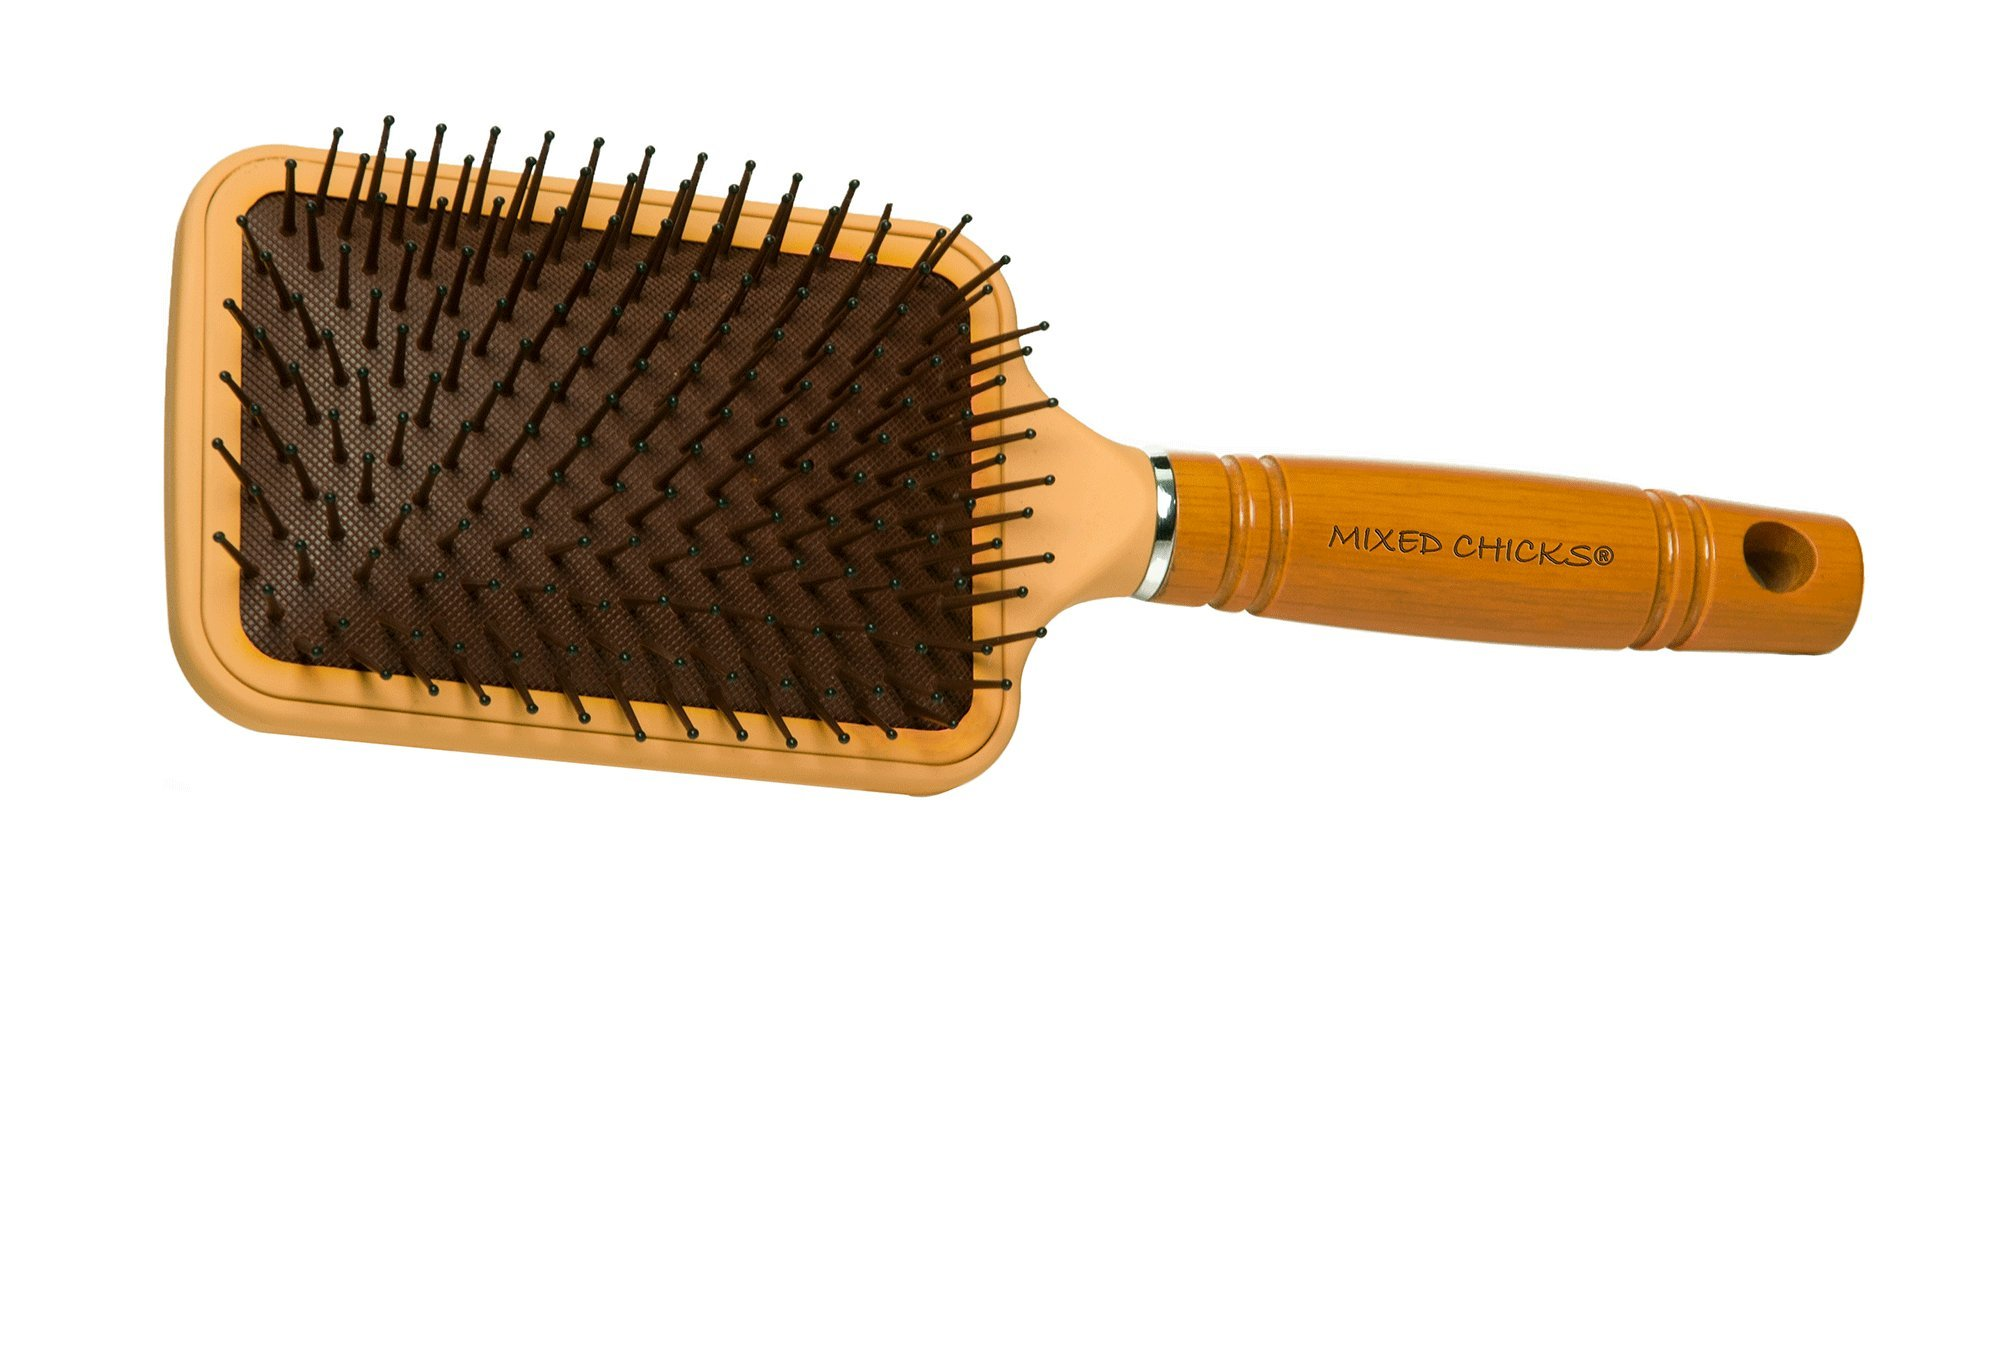 Mixed Chicks Paddle Brush with Hardened Plastic and Wood Handle